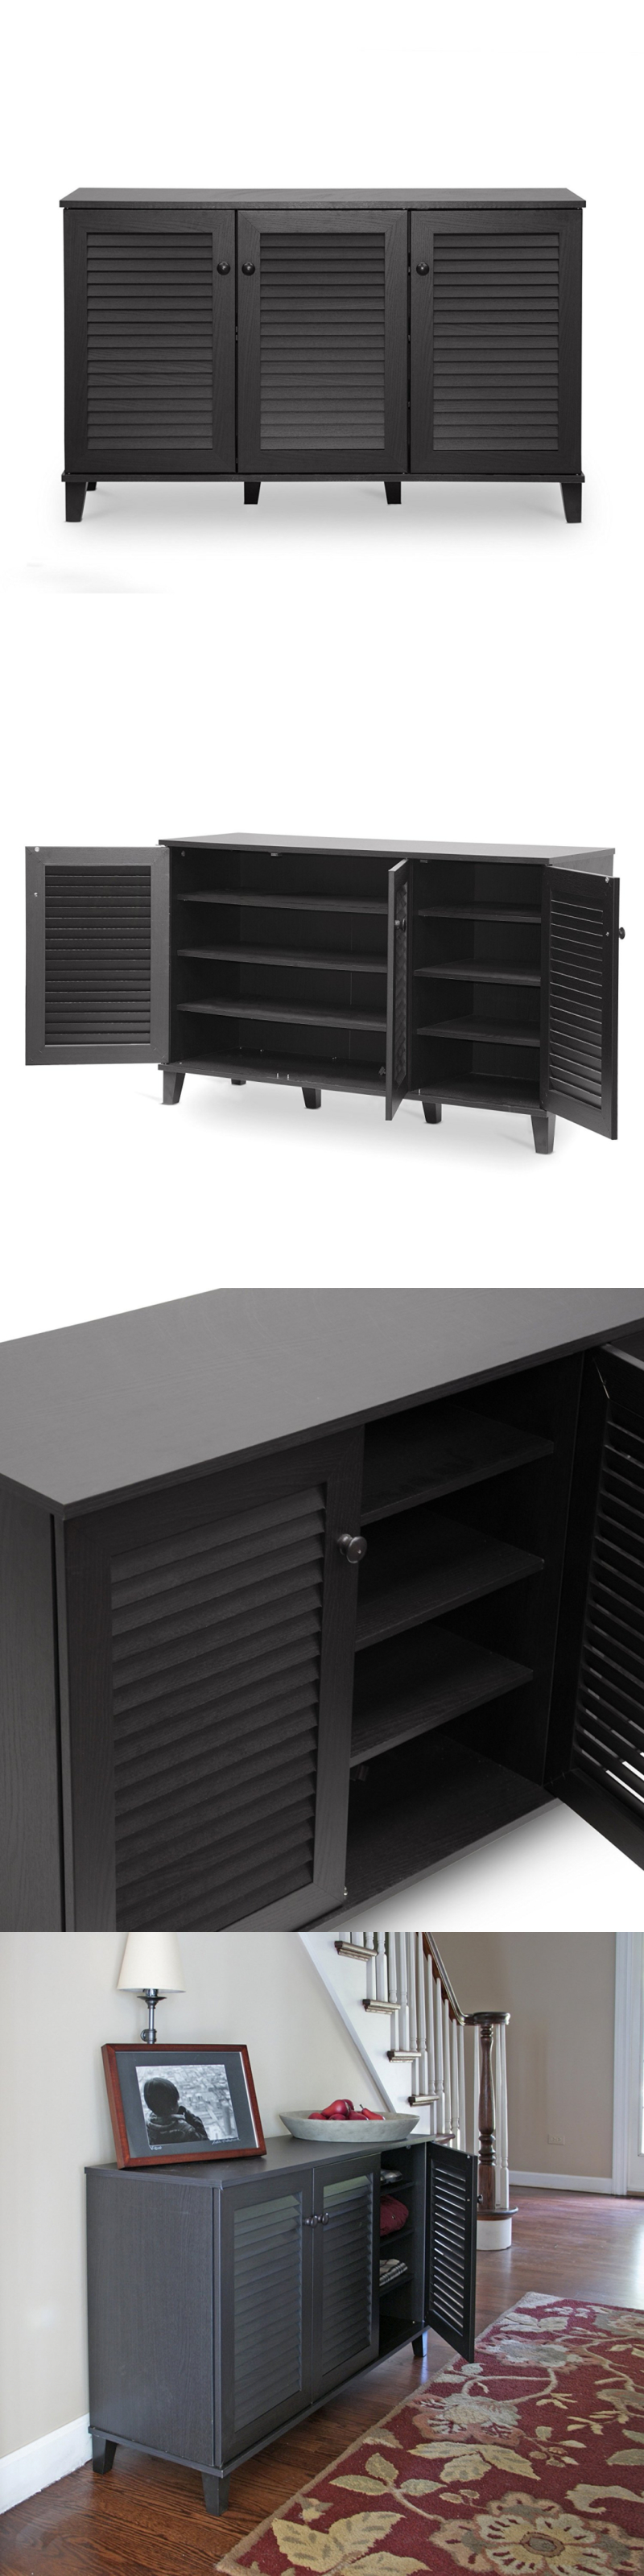 Shoe Organizers 43506: Baxton Studio Warren Shoe-Storage Cabinet ...